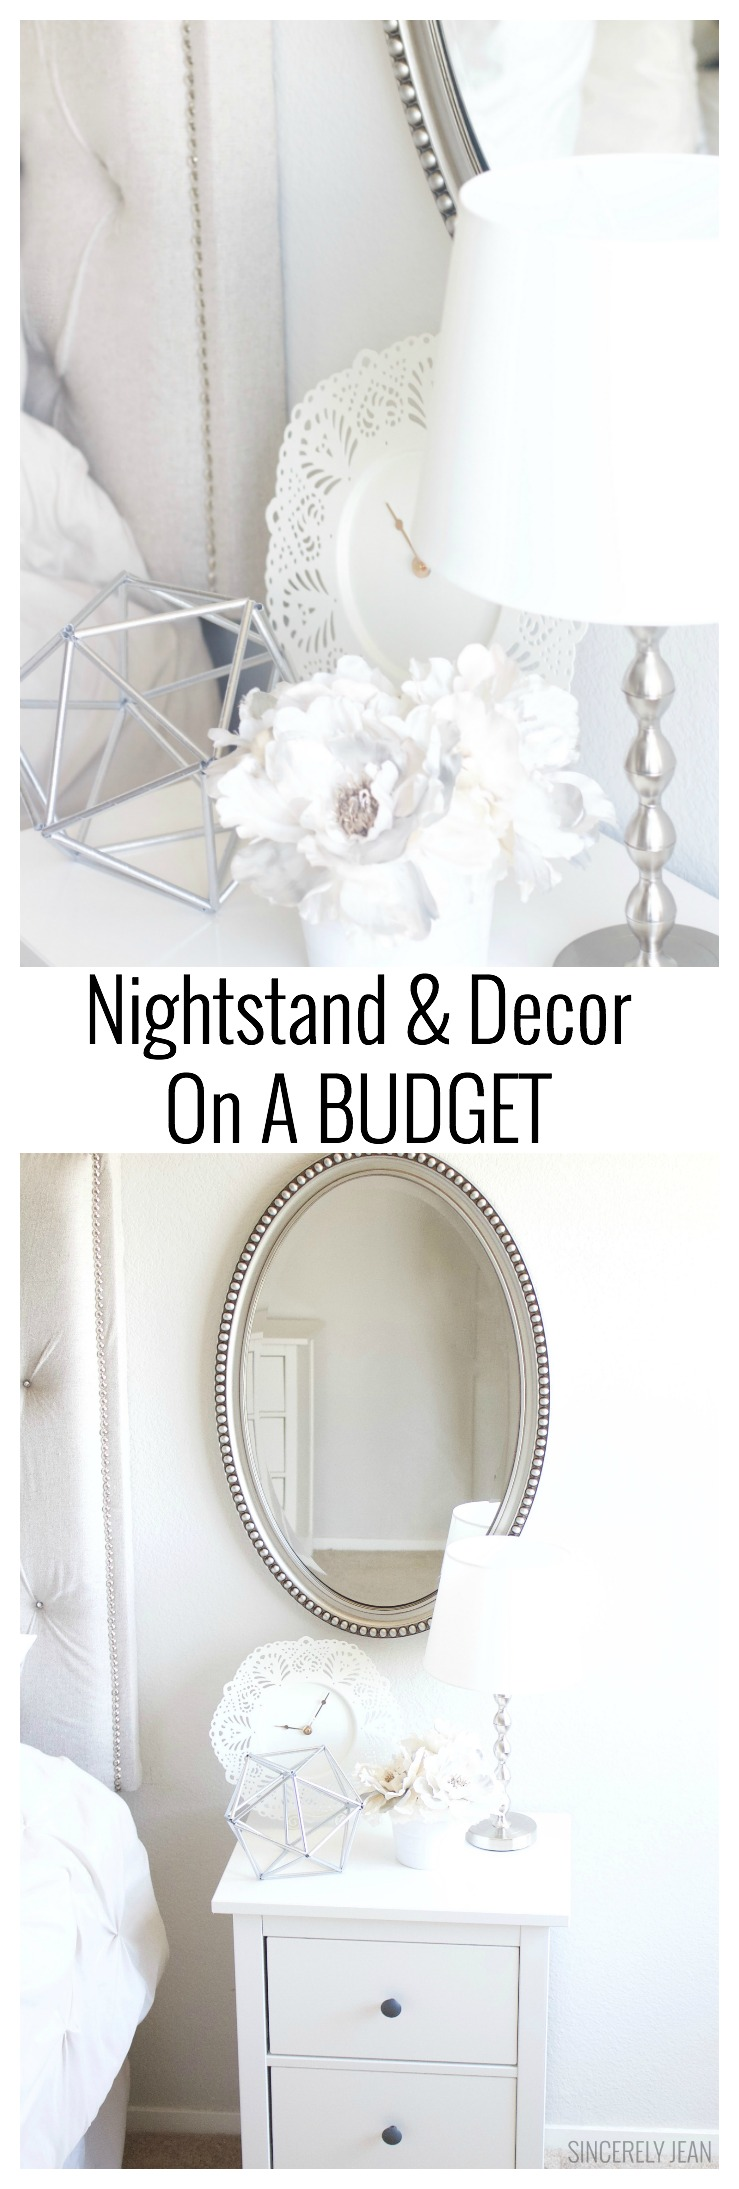 Nightstand & Decor on a Budget - home decor simple easy cheap ideas